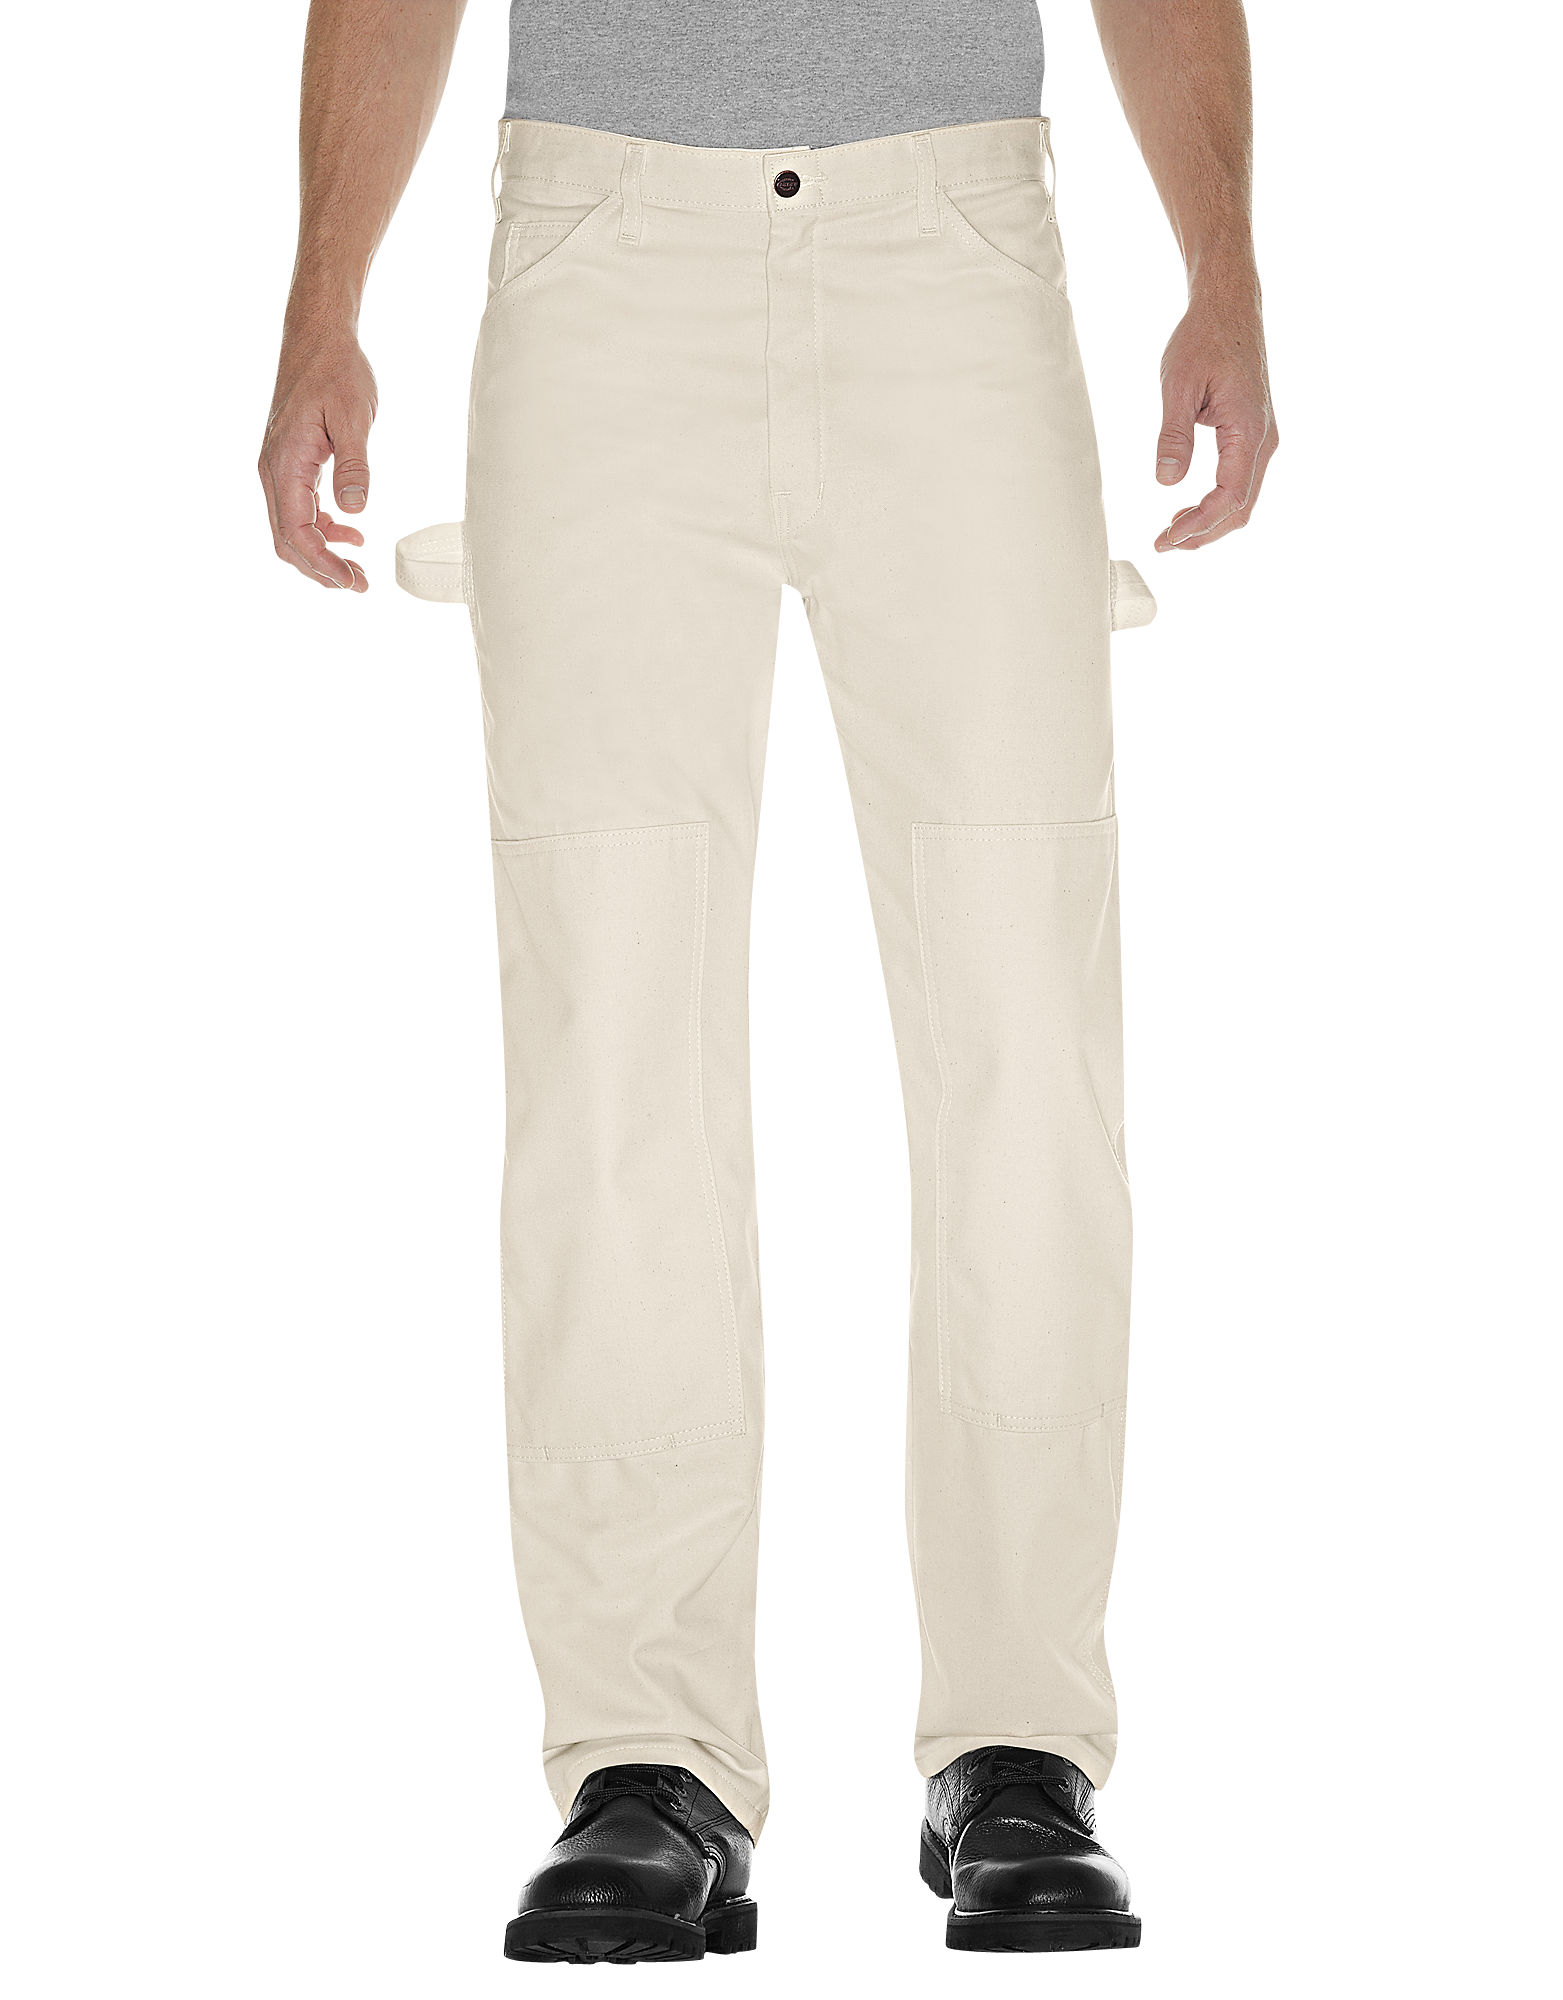 Painter's Double Knee Utility Pant-Dickies Industrial